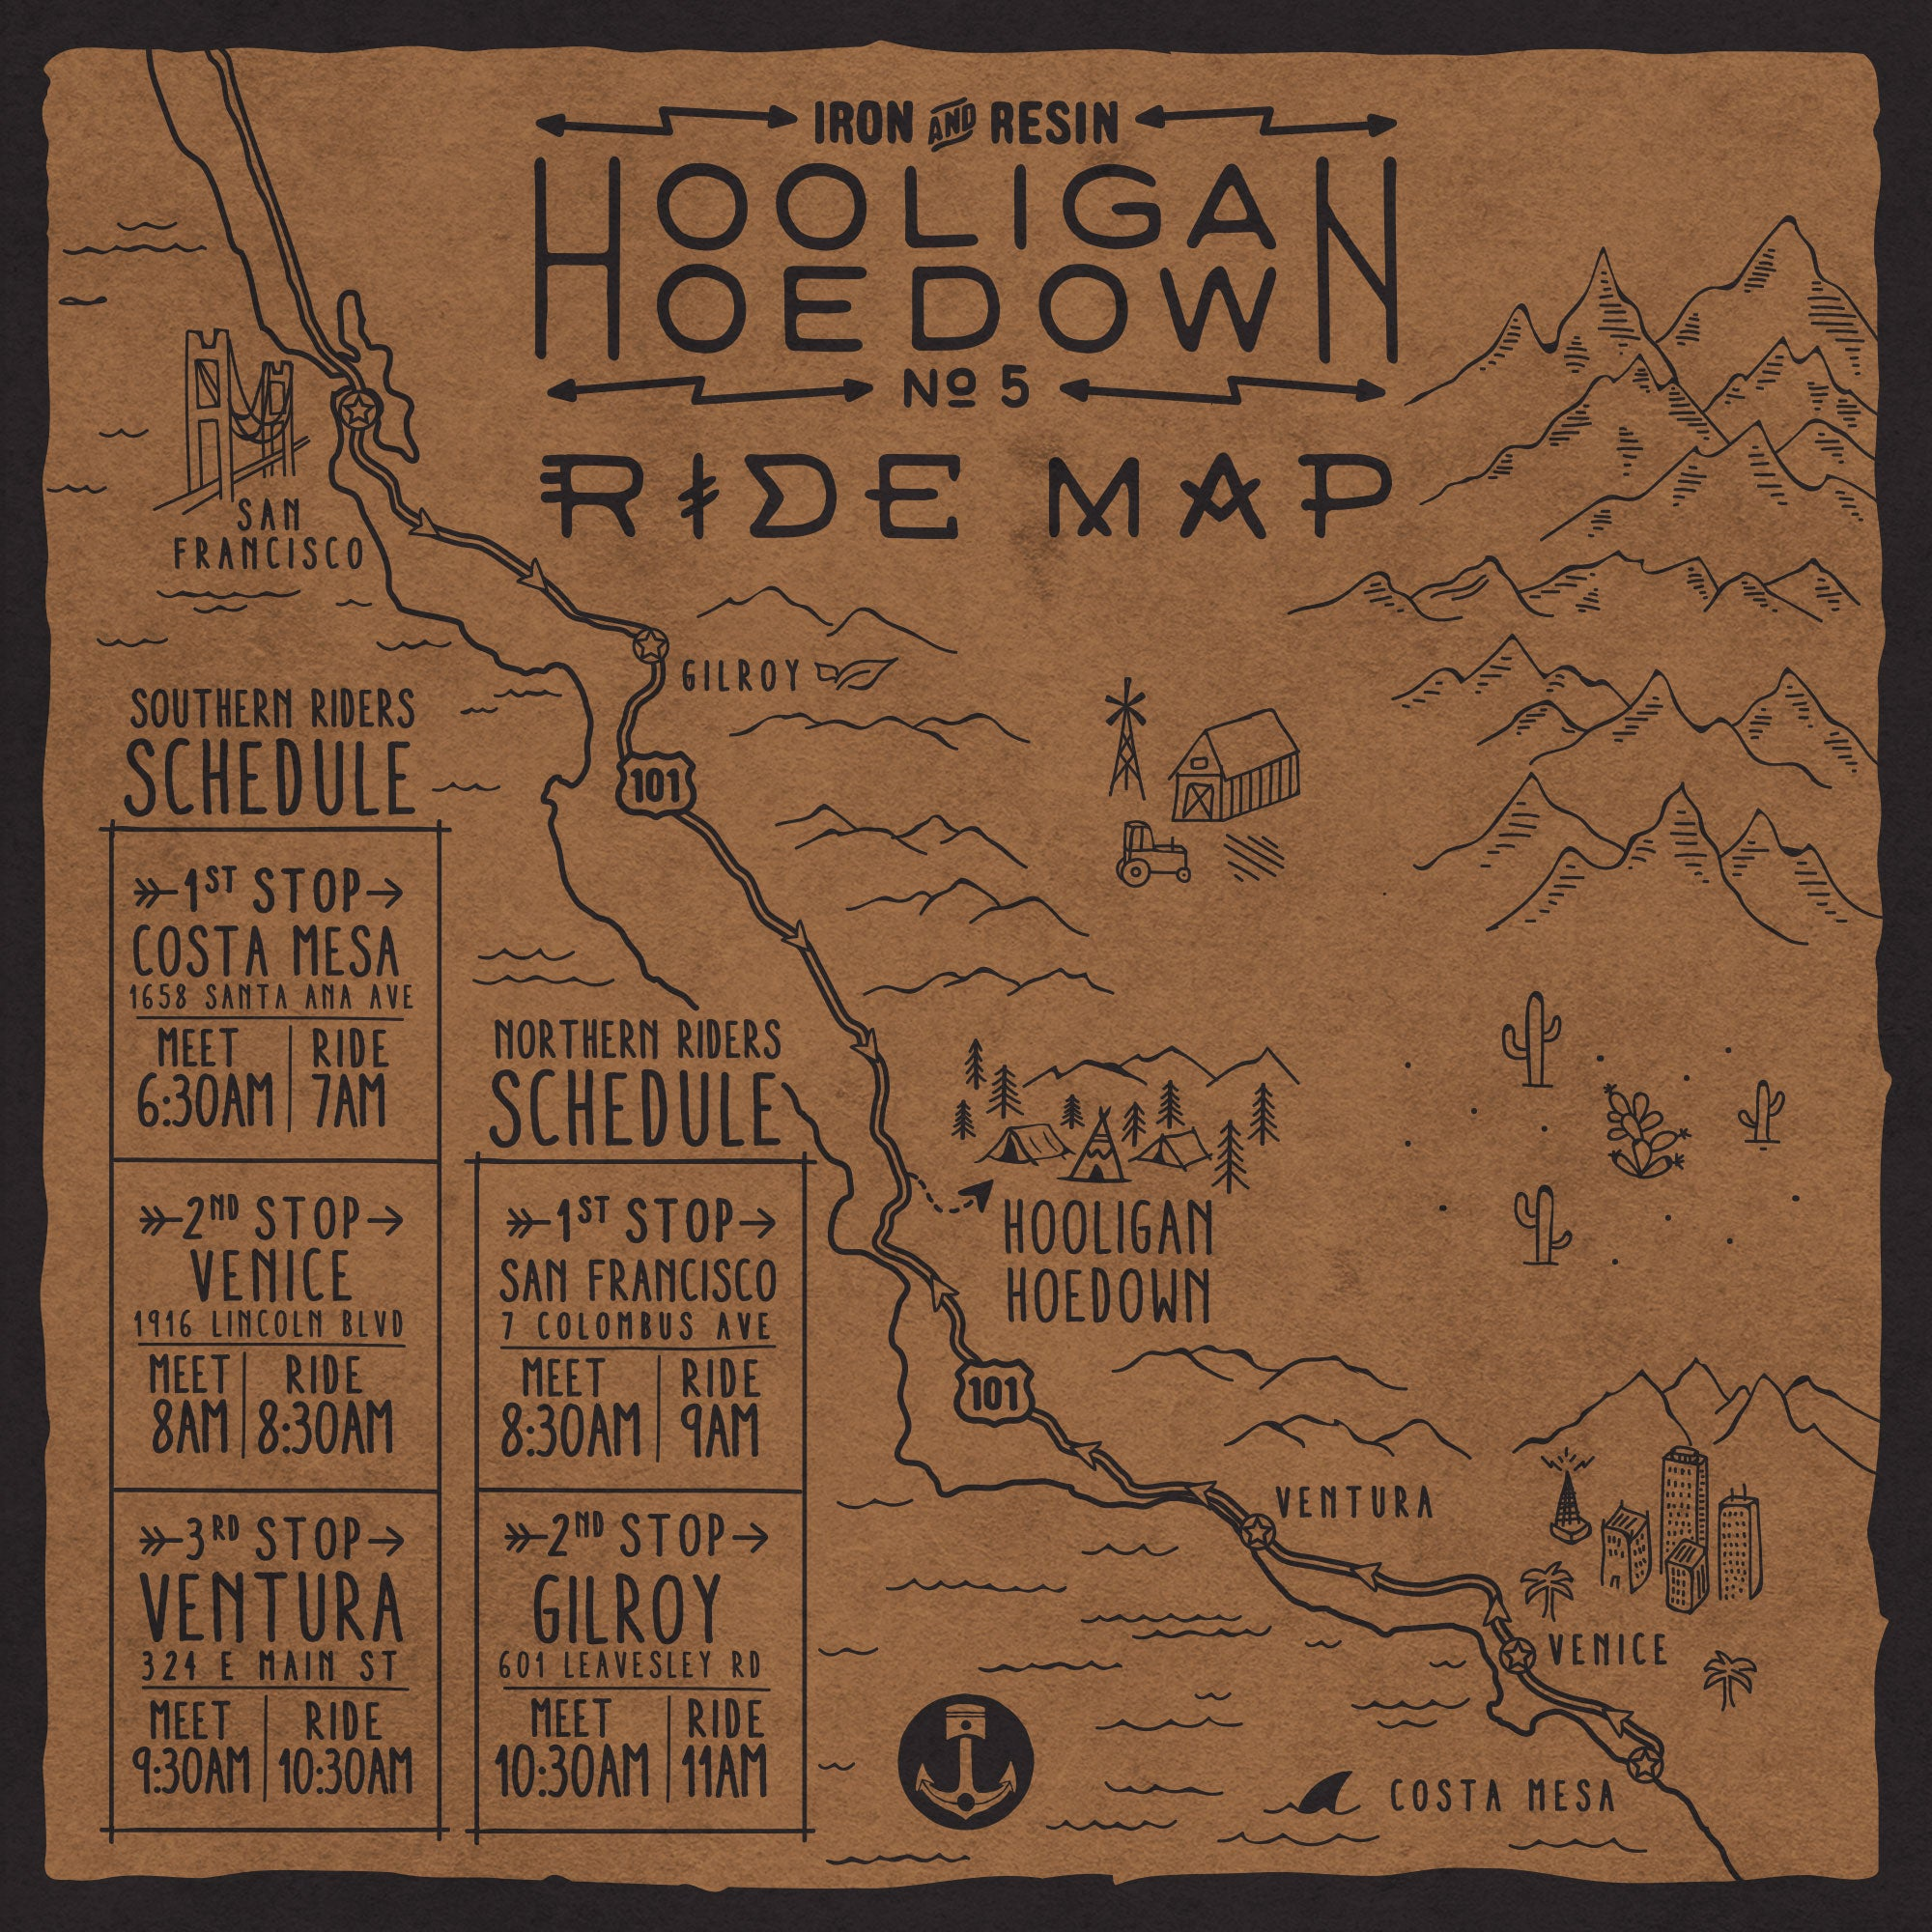 Hooligan Hoedown White Buffalo Ride Map